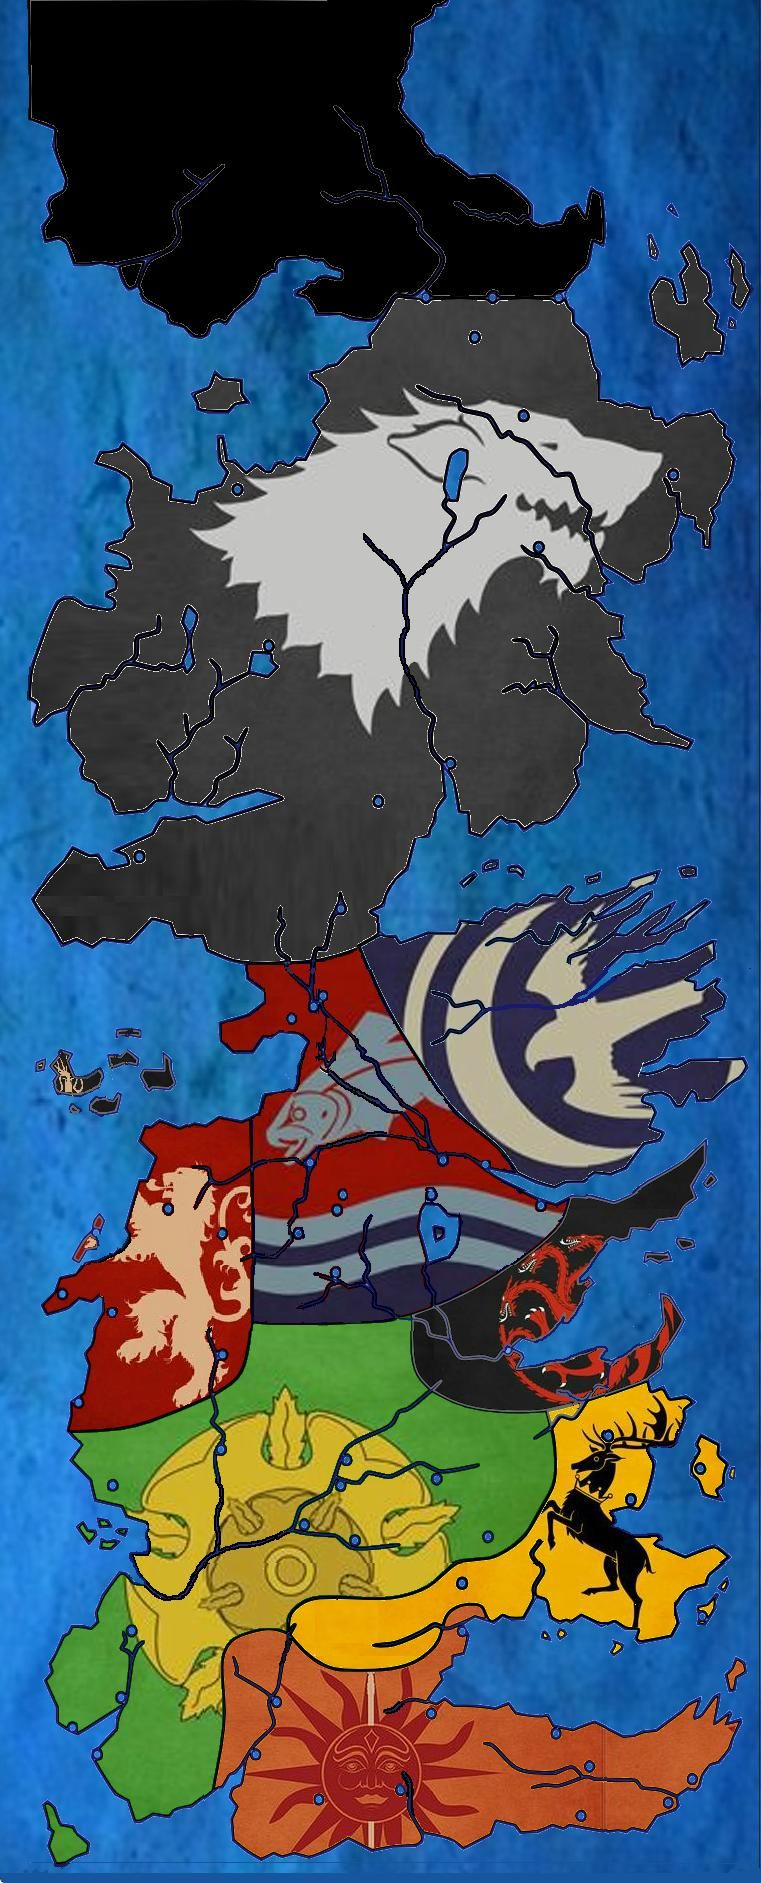 Got bored, made a Westeros map of the ruling houses (by ... on a song of ice and fire, fire and blood, gsme of thrones map, antarctic peninsula map, the winds of winter, a storm of swords, game of thrones - season 2, usa map, a dance with dragons, house targaryen, a feast for crows, see your house map, dothraki language, walking dead map, kolkata city map, guild wars 2 map, game of thrones - season 1, ice and fire world map, george r. r. martin, a golden crown, alfie owen-allen, throne of bones map, ww2 map, king of thrones map, upside down world map, a clash of kings houses map, winter is coming, lord snow, crown of thrones map, the prince of winterfell, calabria italy map, fire and ice book map, tales of dunk and egg, gameof thrones map, a clash of kings,